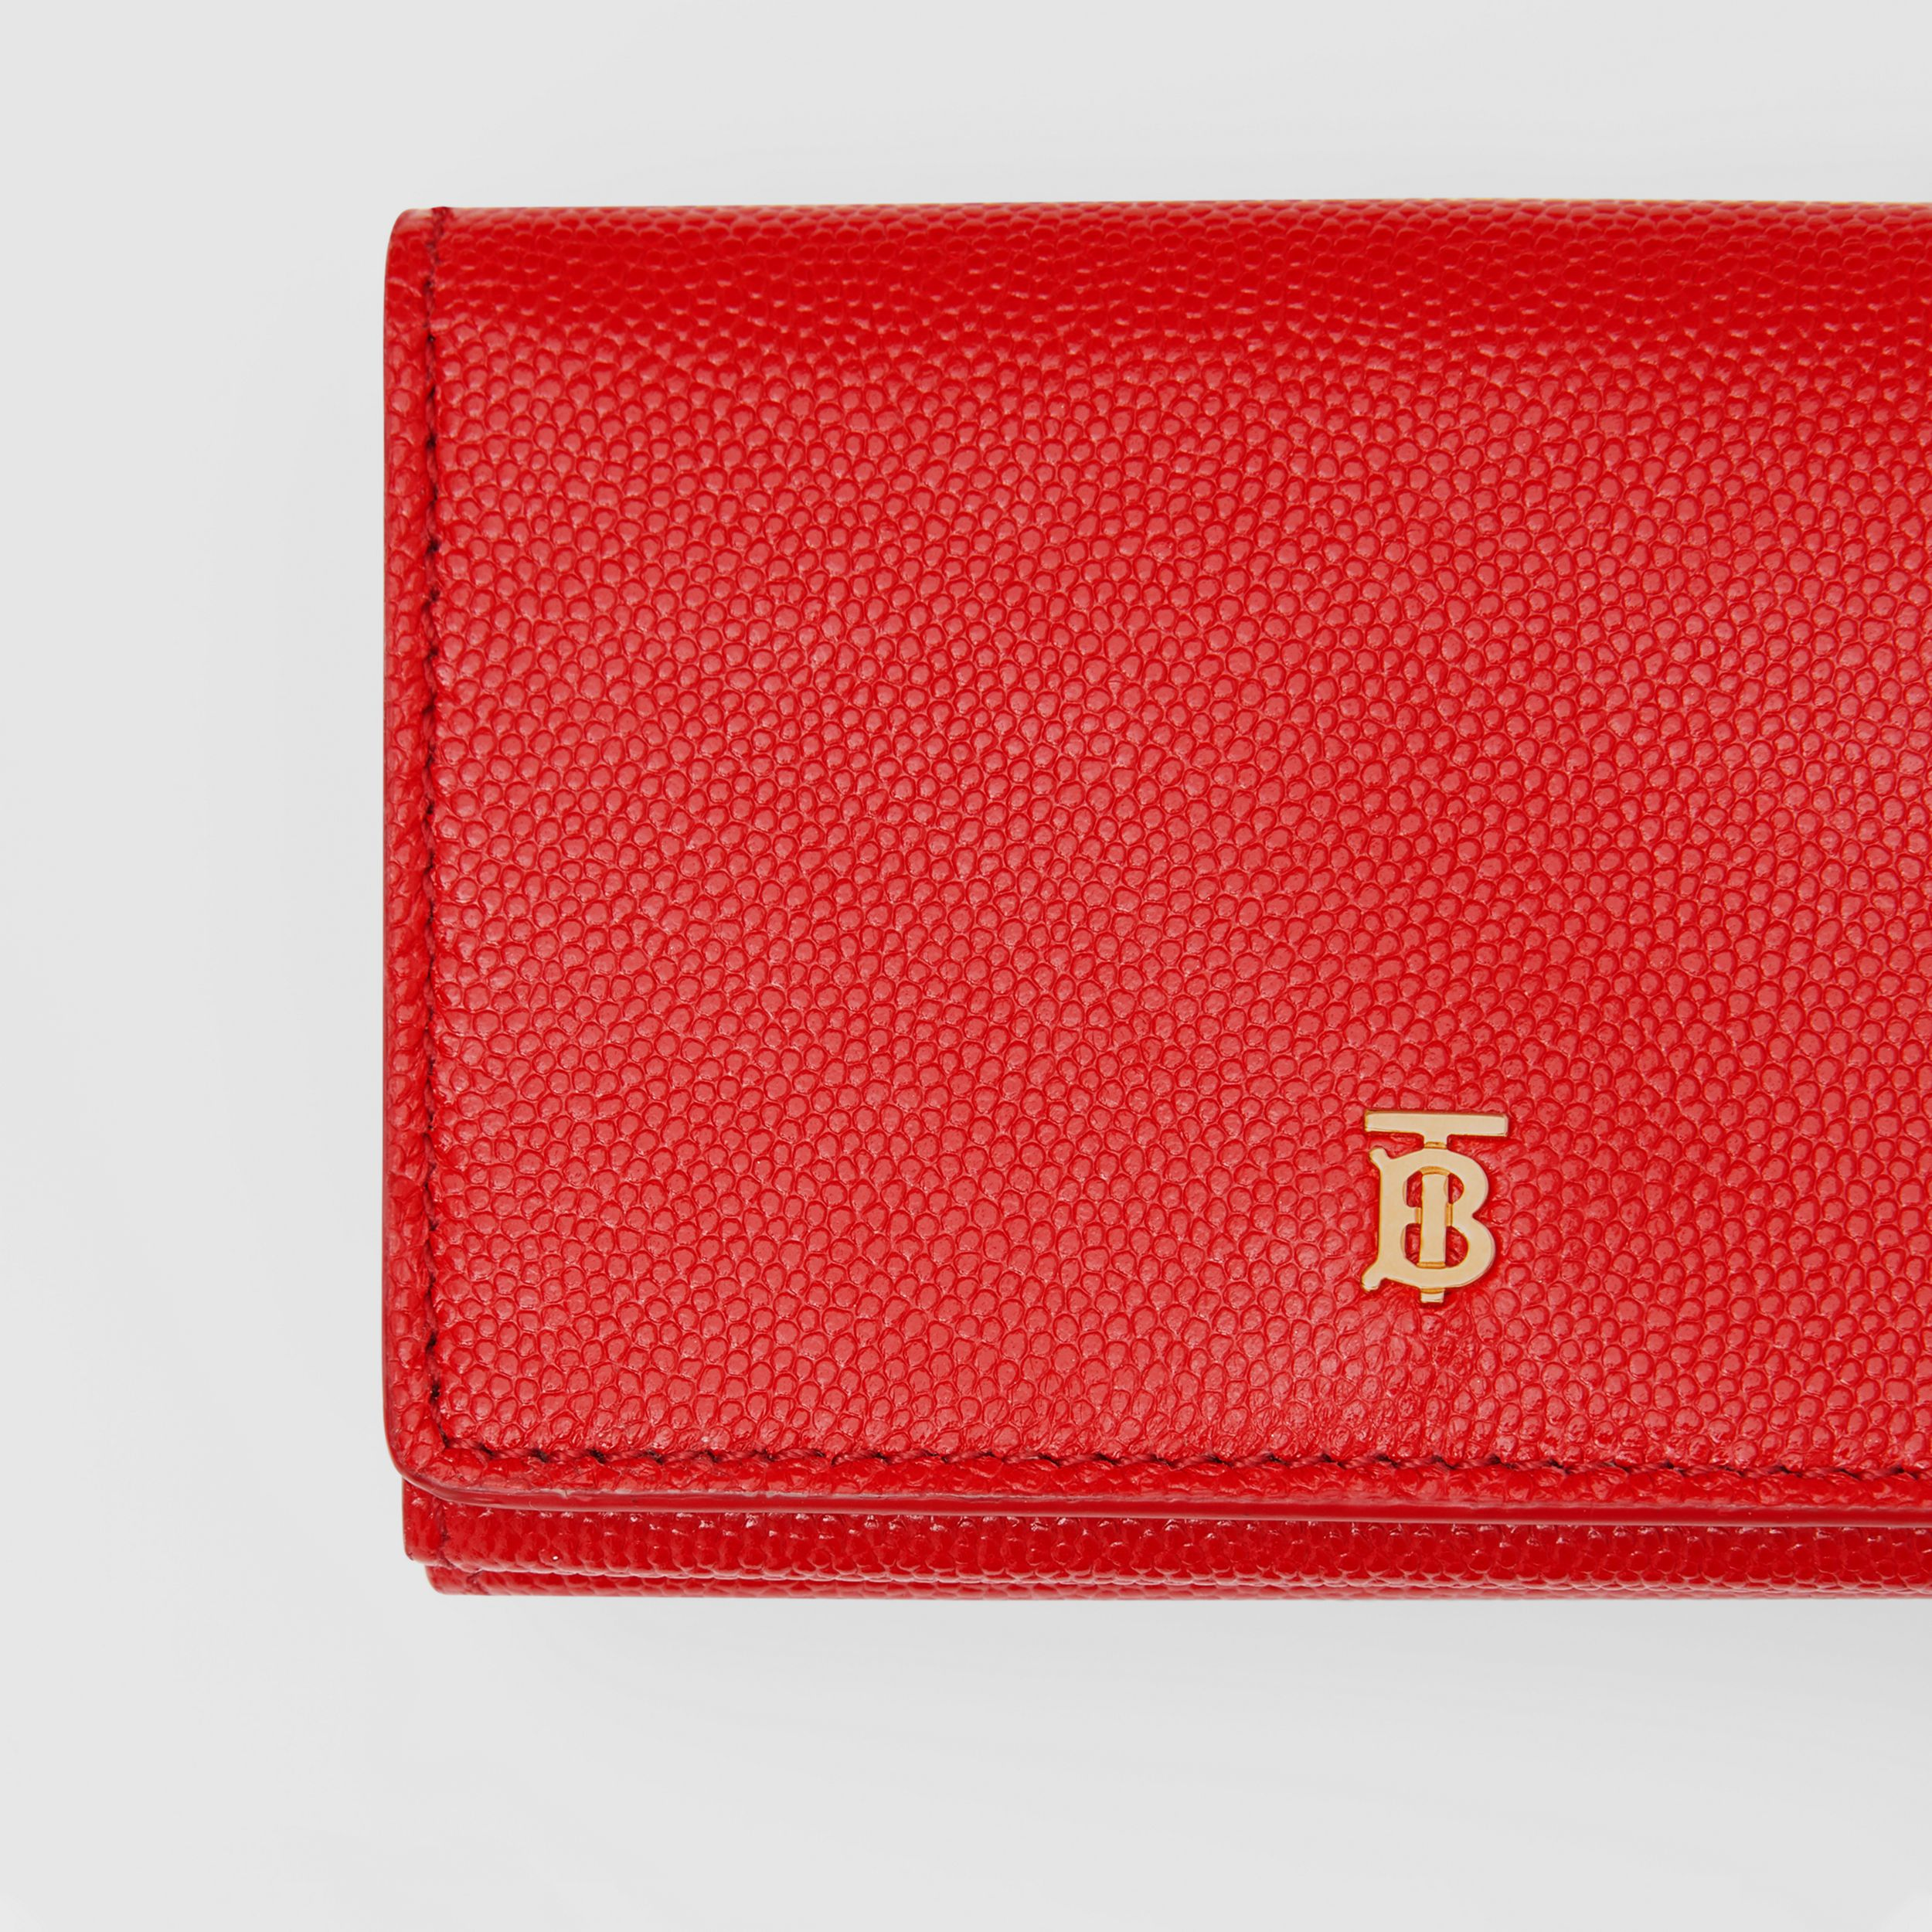 Small Grainy Leather Folding Wallet in Bright Red - Women | Burberry - 2